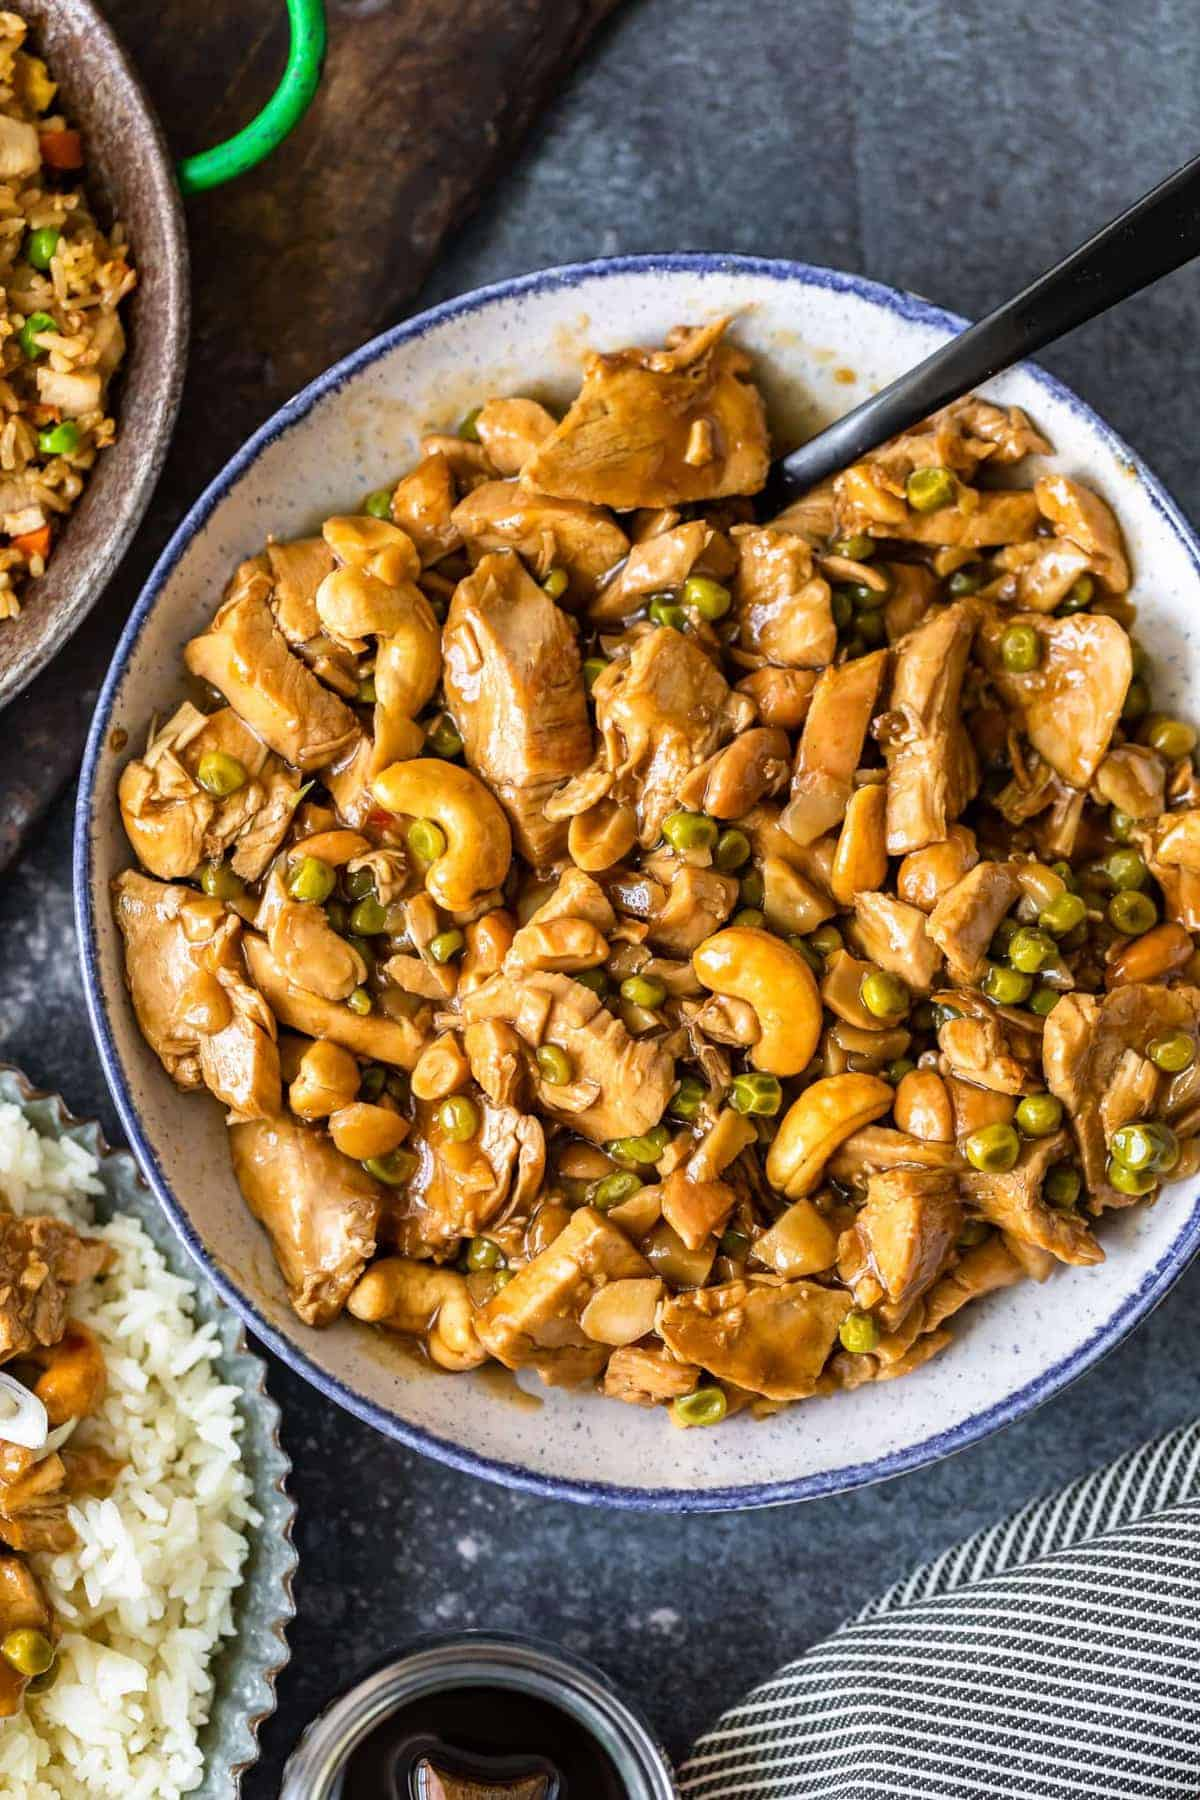 Homemade cashew chicken served in a white bowl